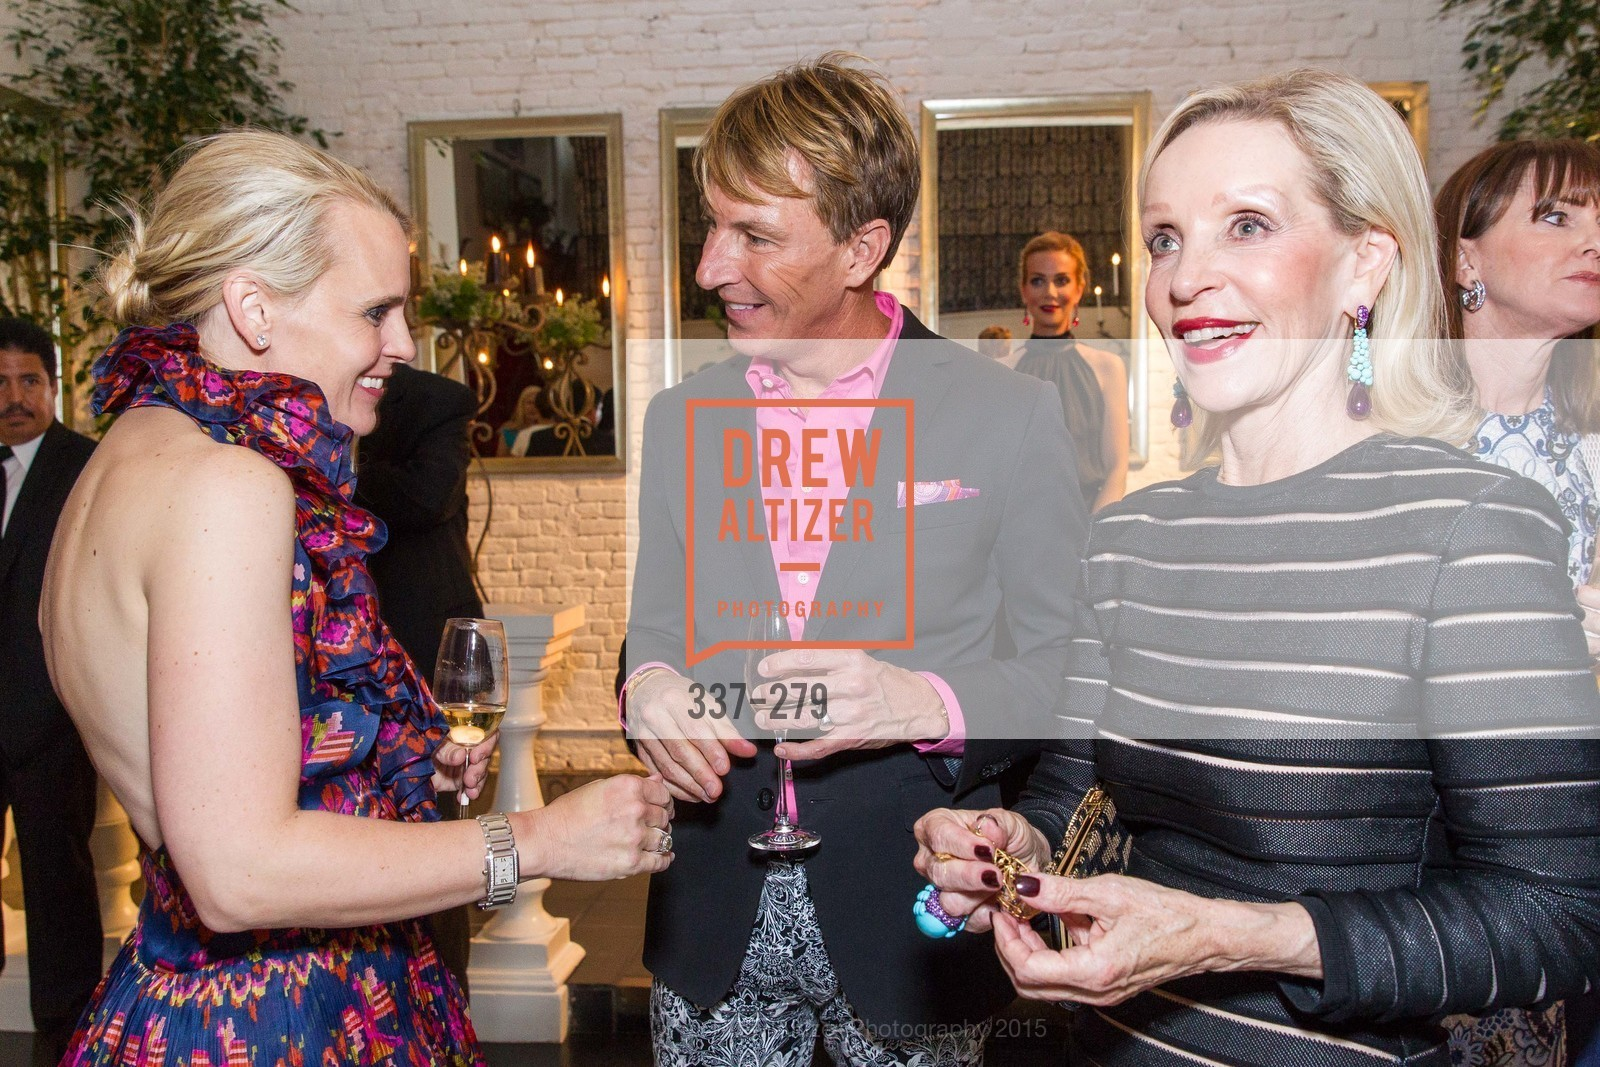 Jane Mudge, Jack Calhoun, Barbara Brown, De Grisogono Kicks off the Opera Opening, Villa Taverna, September 9th, 2015,Drew Altizer, Drew Altizer Photography, full-service agency, private events, San Francisco photographer, photographer california